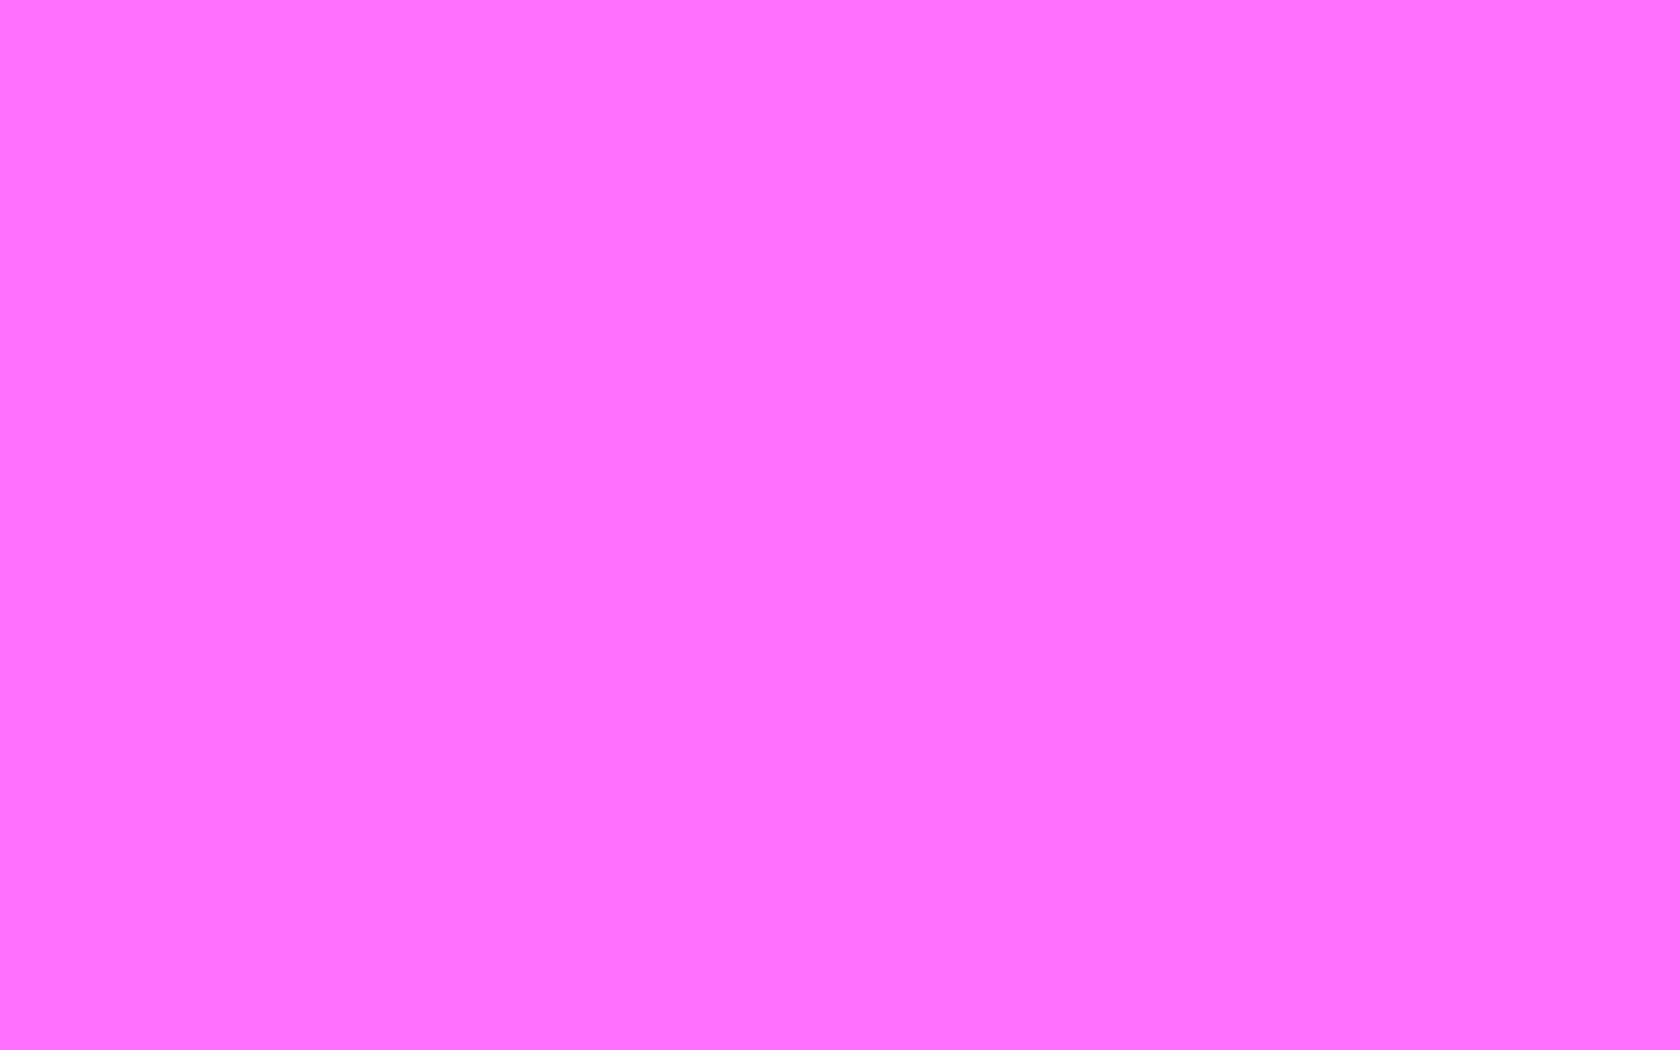 1680x1050 Ultra Pink Solid Color Background